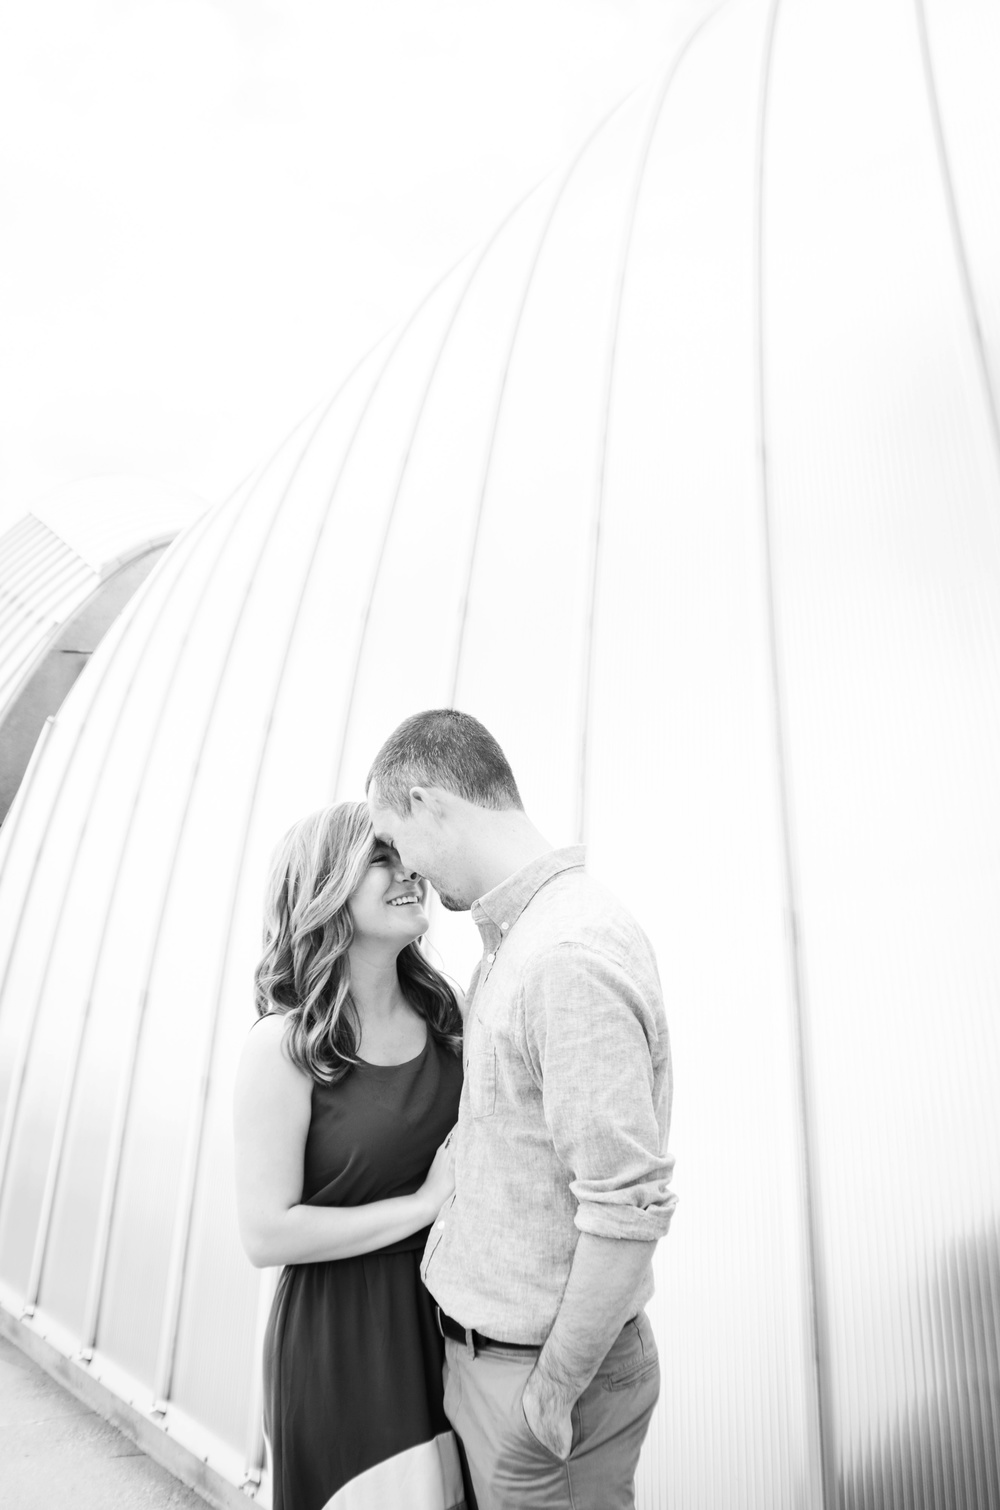 Downtown Des Moines Engagement | Minneapolis Wedding Photographer Ali Leigh Photo_0420.jpg